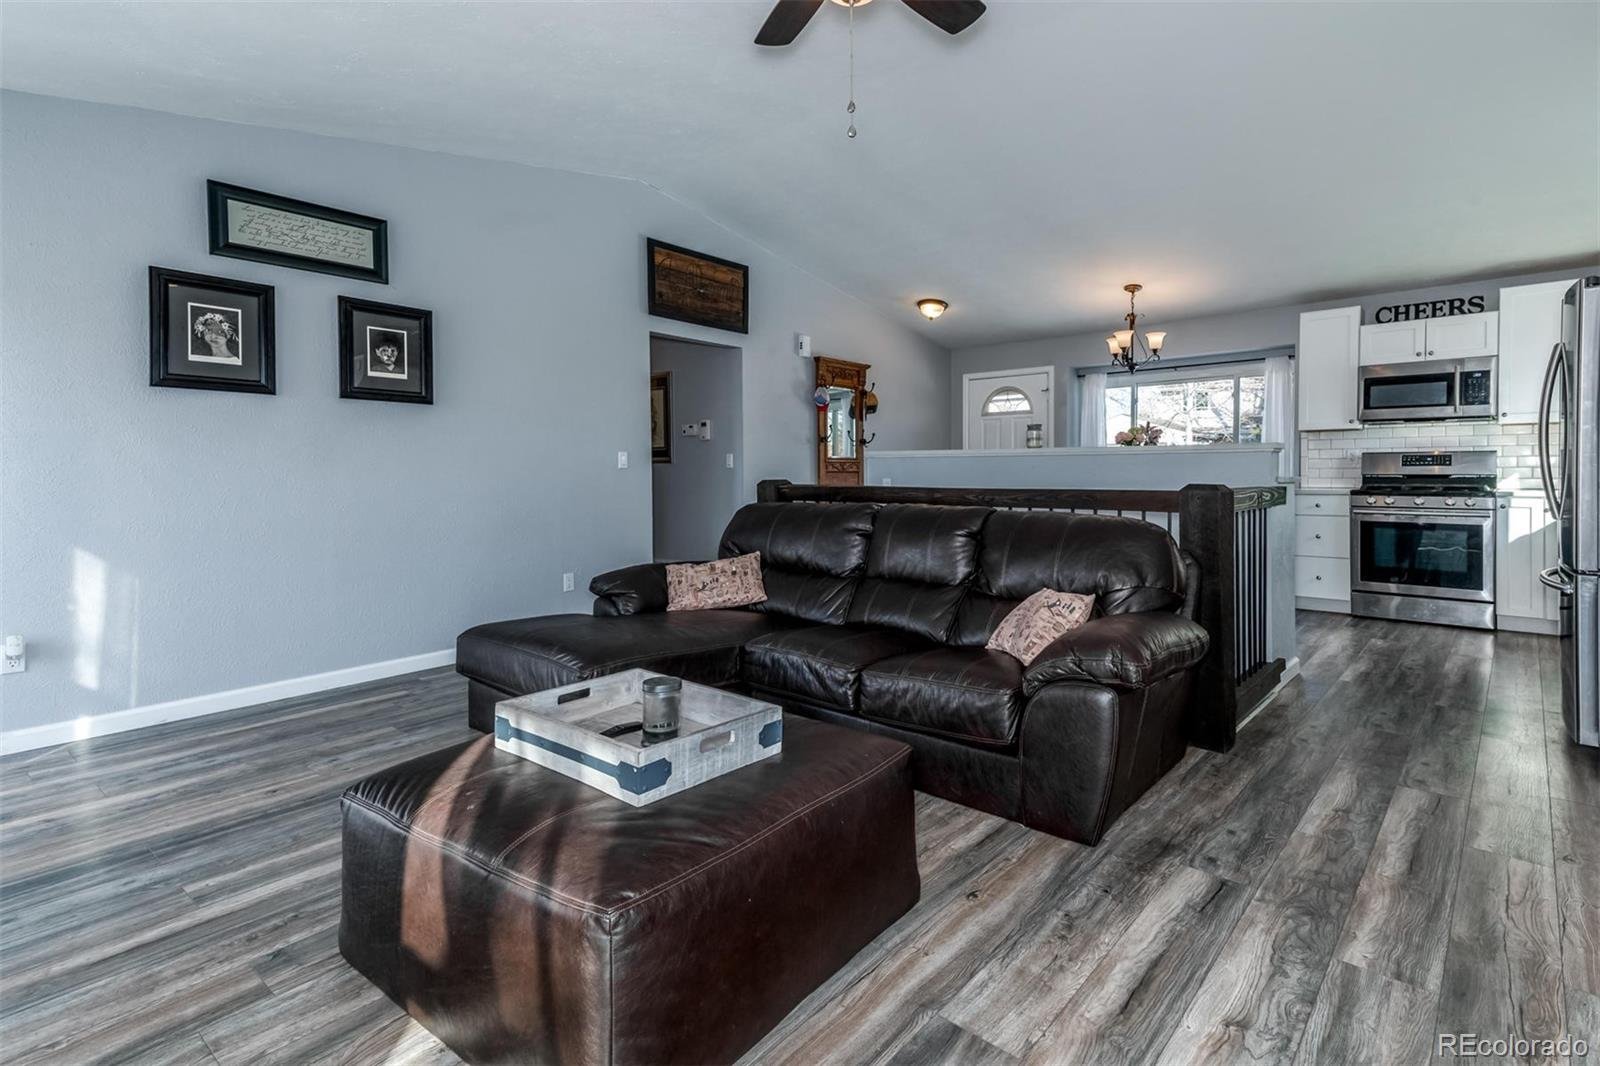 MLS# 5599126 - 11 - 5806 W 74th Place, Arvada, CO 80003